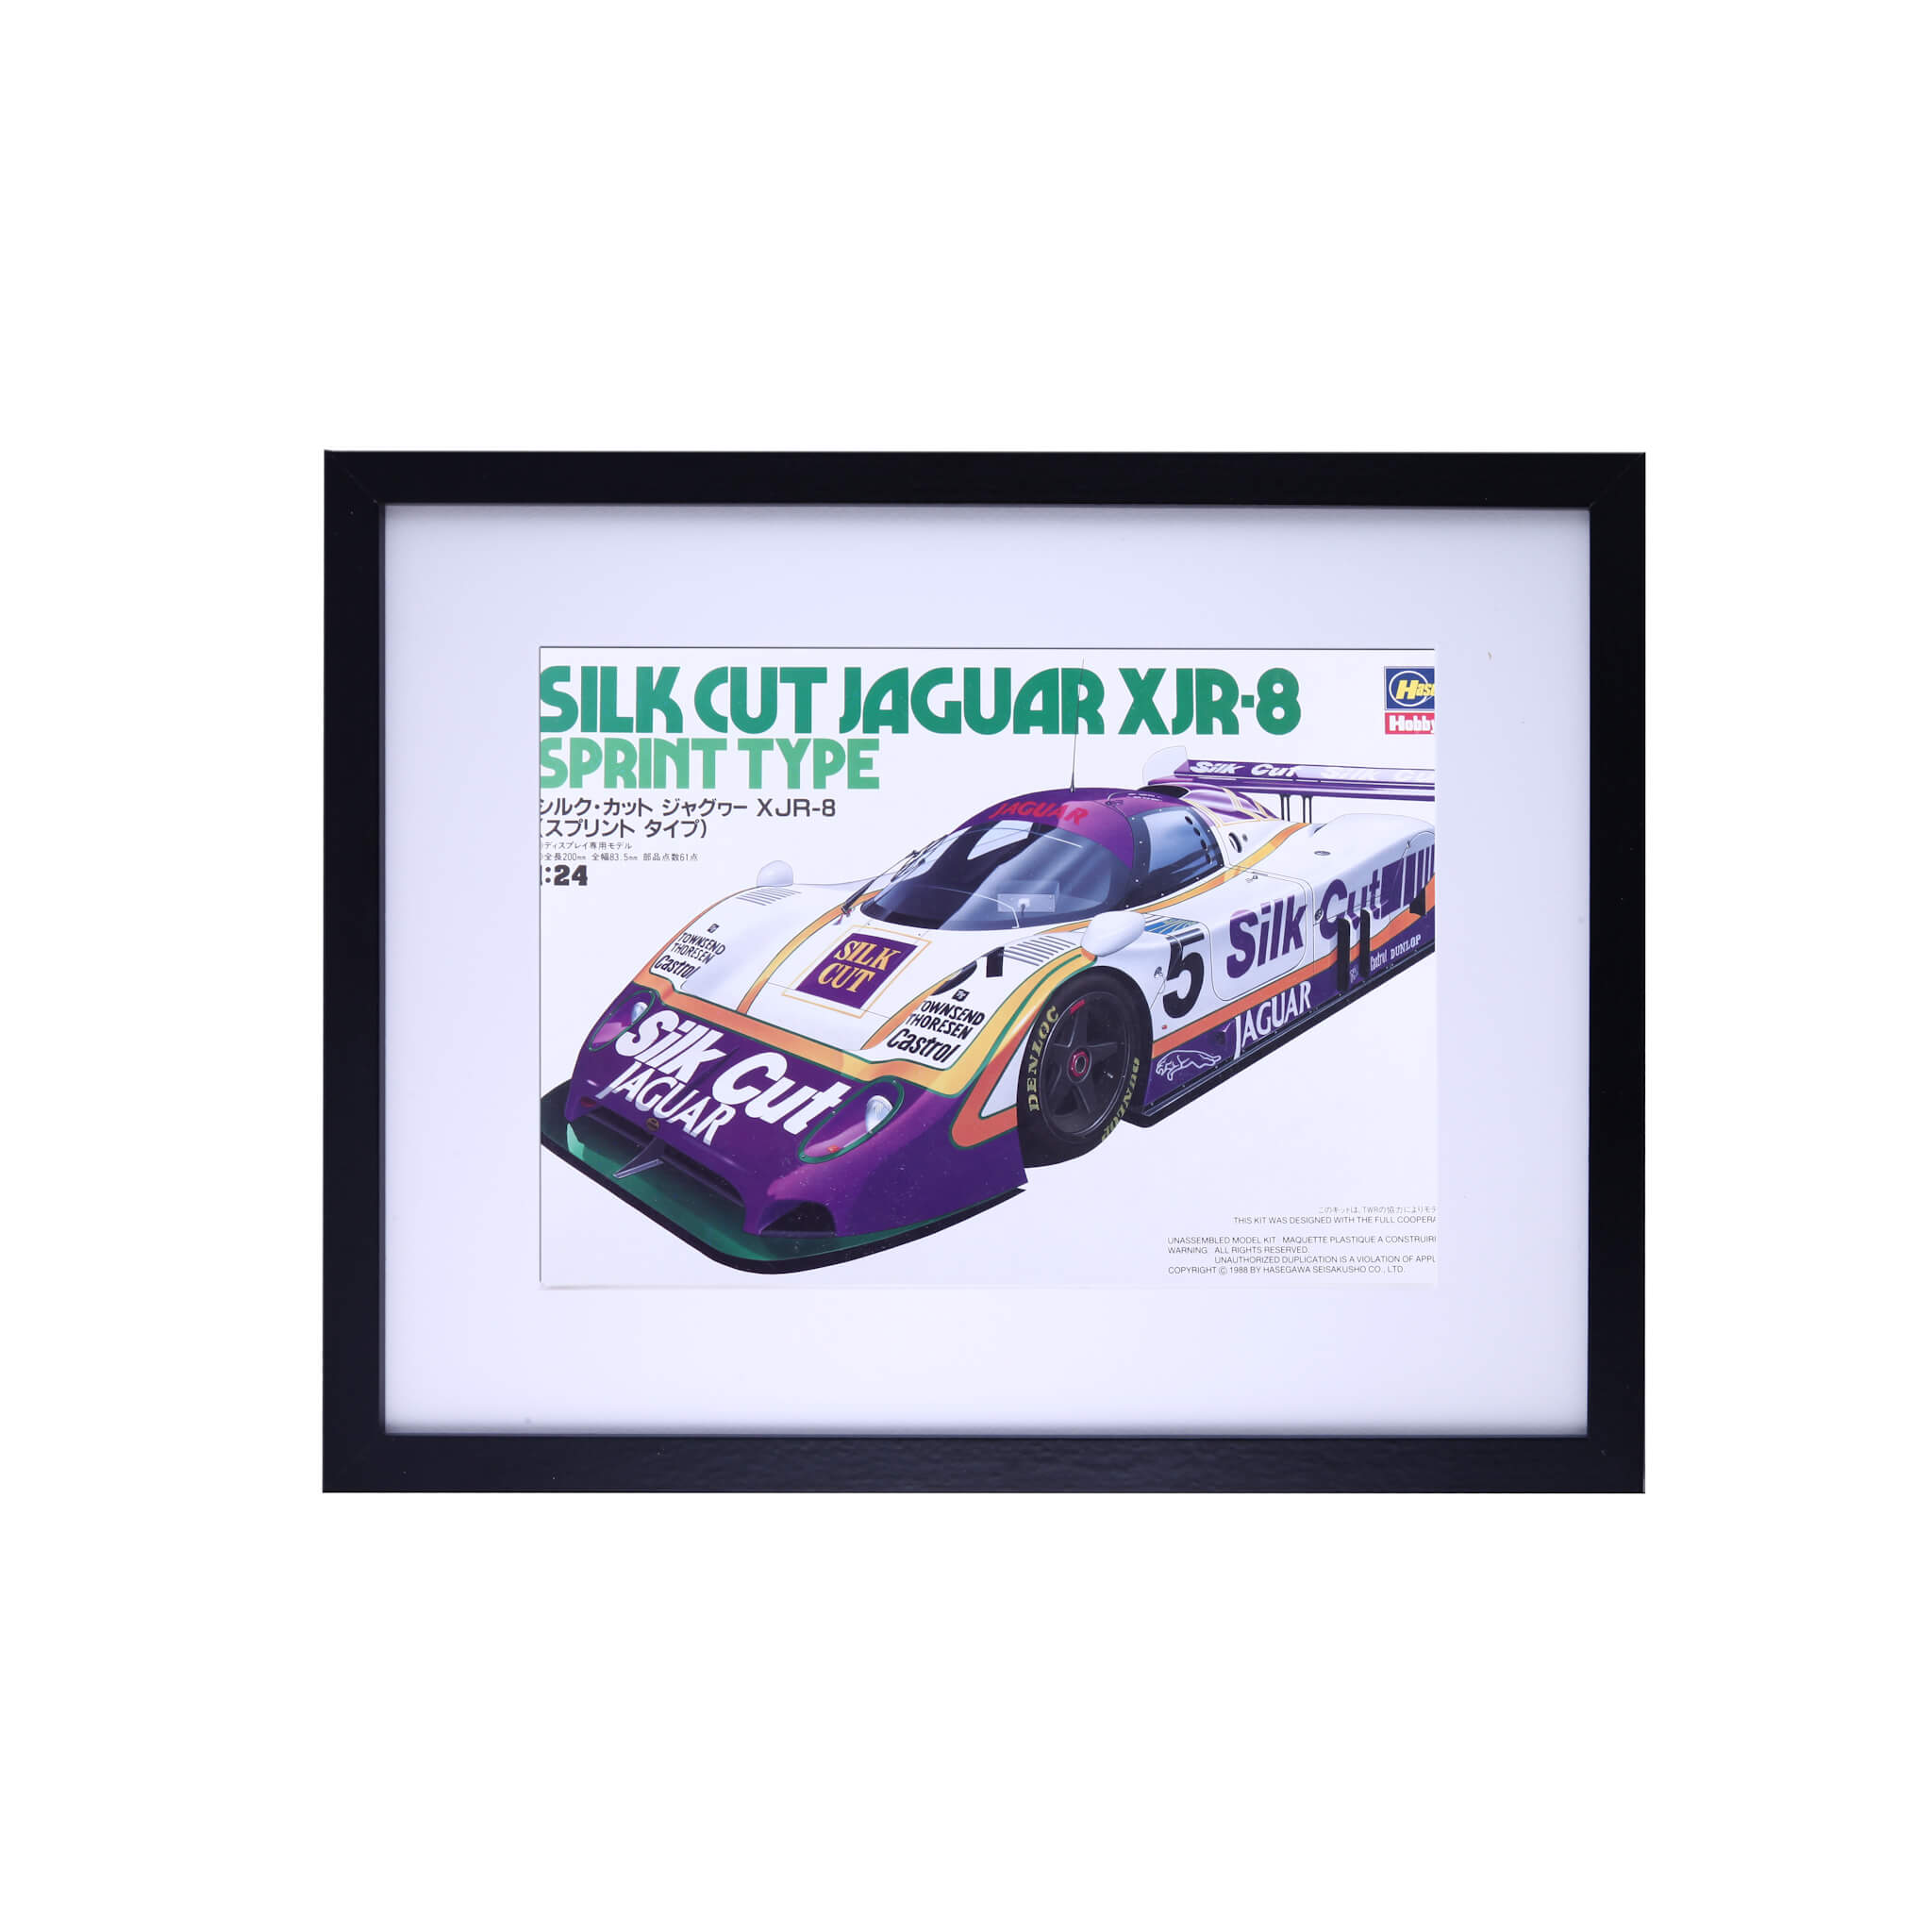 Silk Cut Jaguar Xjr-8 Print Original Tamiya Box Cover Artwork Print